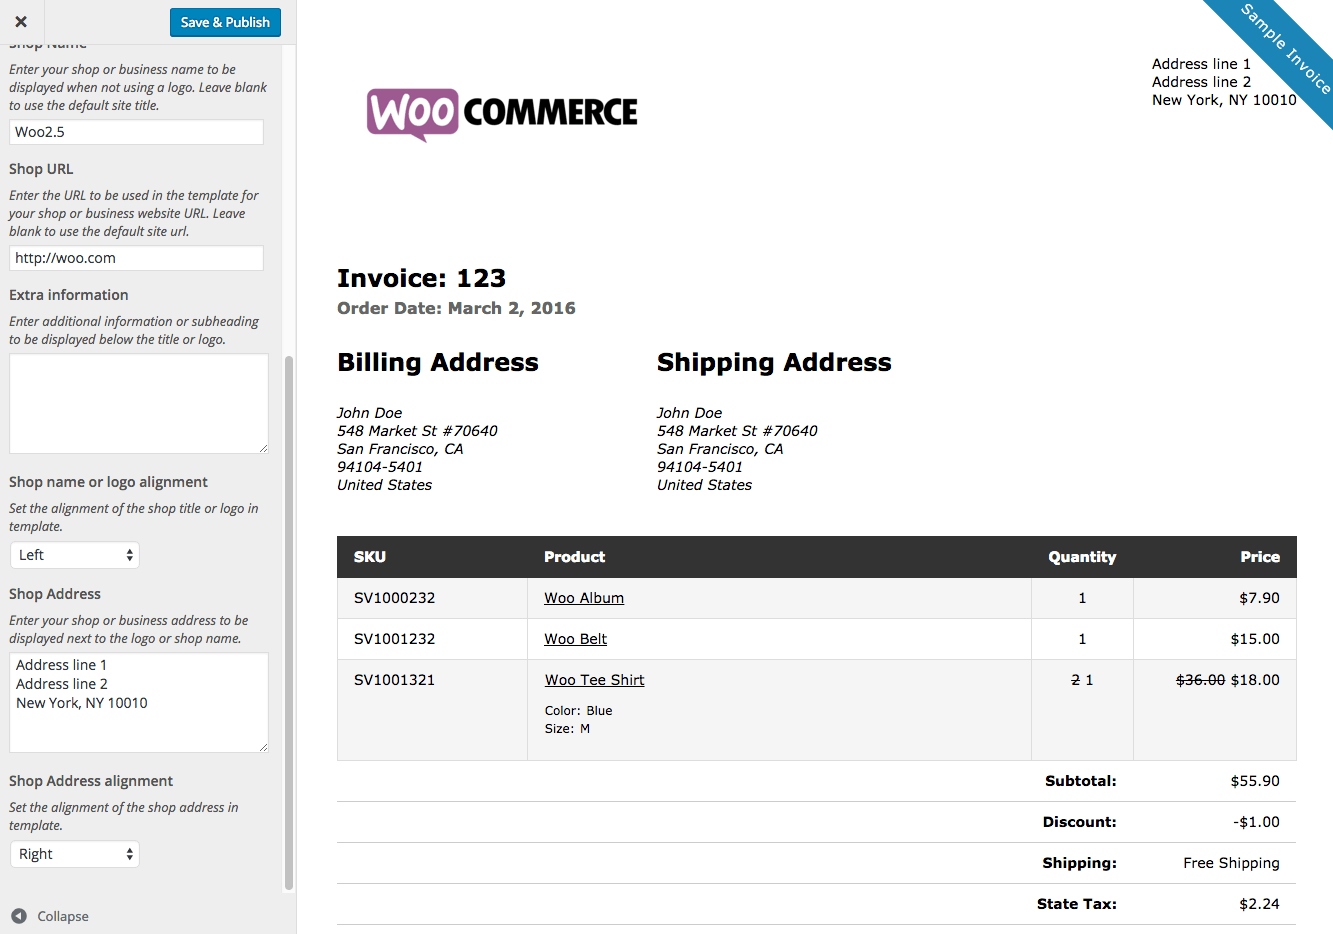 Opposenewapstandardsus  Scenic Print Invoices Amp Packing Lists  Woocommerce With Fair Woocommerce Print Invoices  Packing Lists Customizer With Enchanting Create A Invoice Also How To Make An Invoice In Word In Addition Free Invoice Online And Concur Invoice As Well As Invoice And Estimate Additionally View And Pay Invoice From Woocommercecom With Opposenewapstandardsus  Fair Print Invoices Amp Packing Lists  Woocommerce With Enchanting Woocommerce Print Invoices  Packing Lists Customizer And Scenic Create A Invoice Also How To Make An Invoice In Word In Addition Free Invoice Online From Woocommercecom